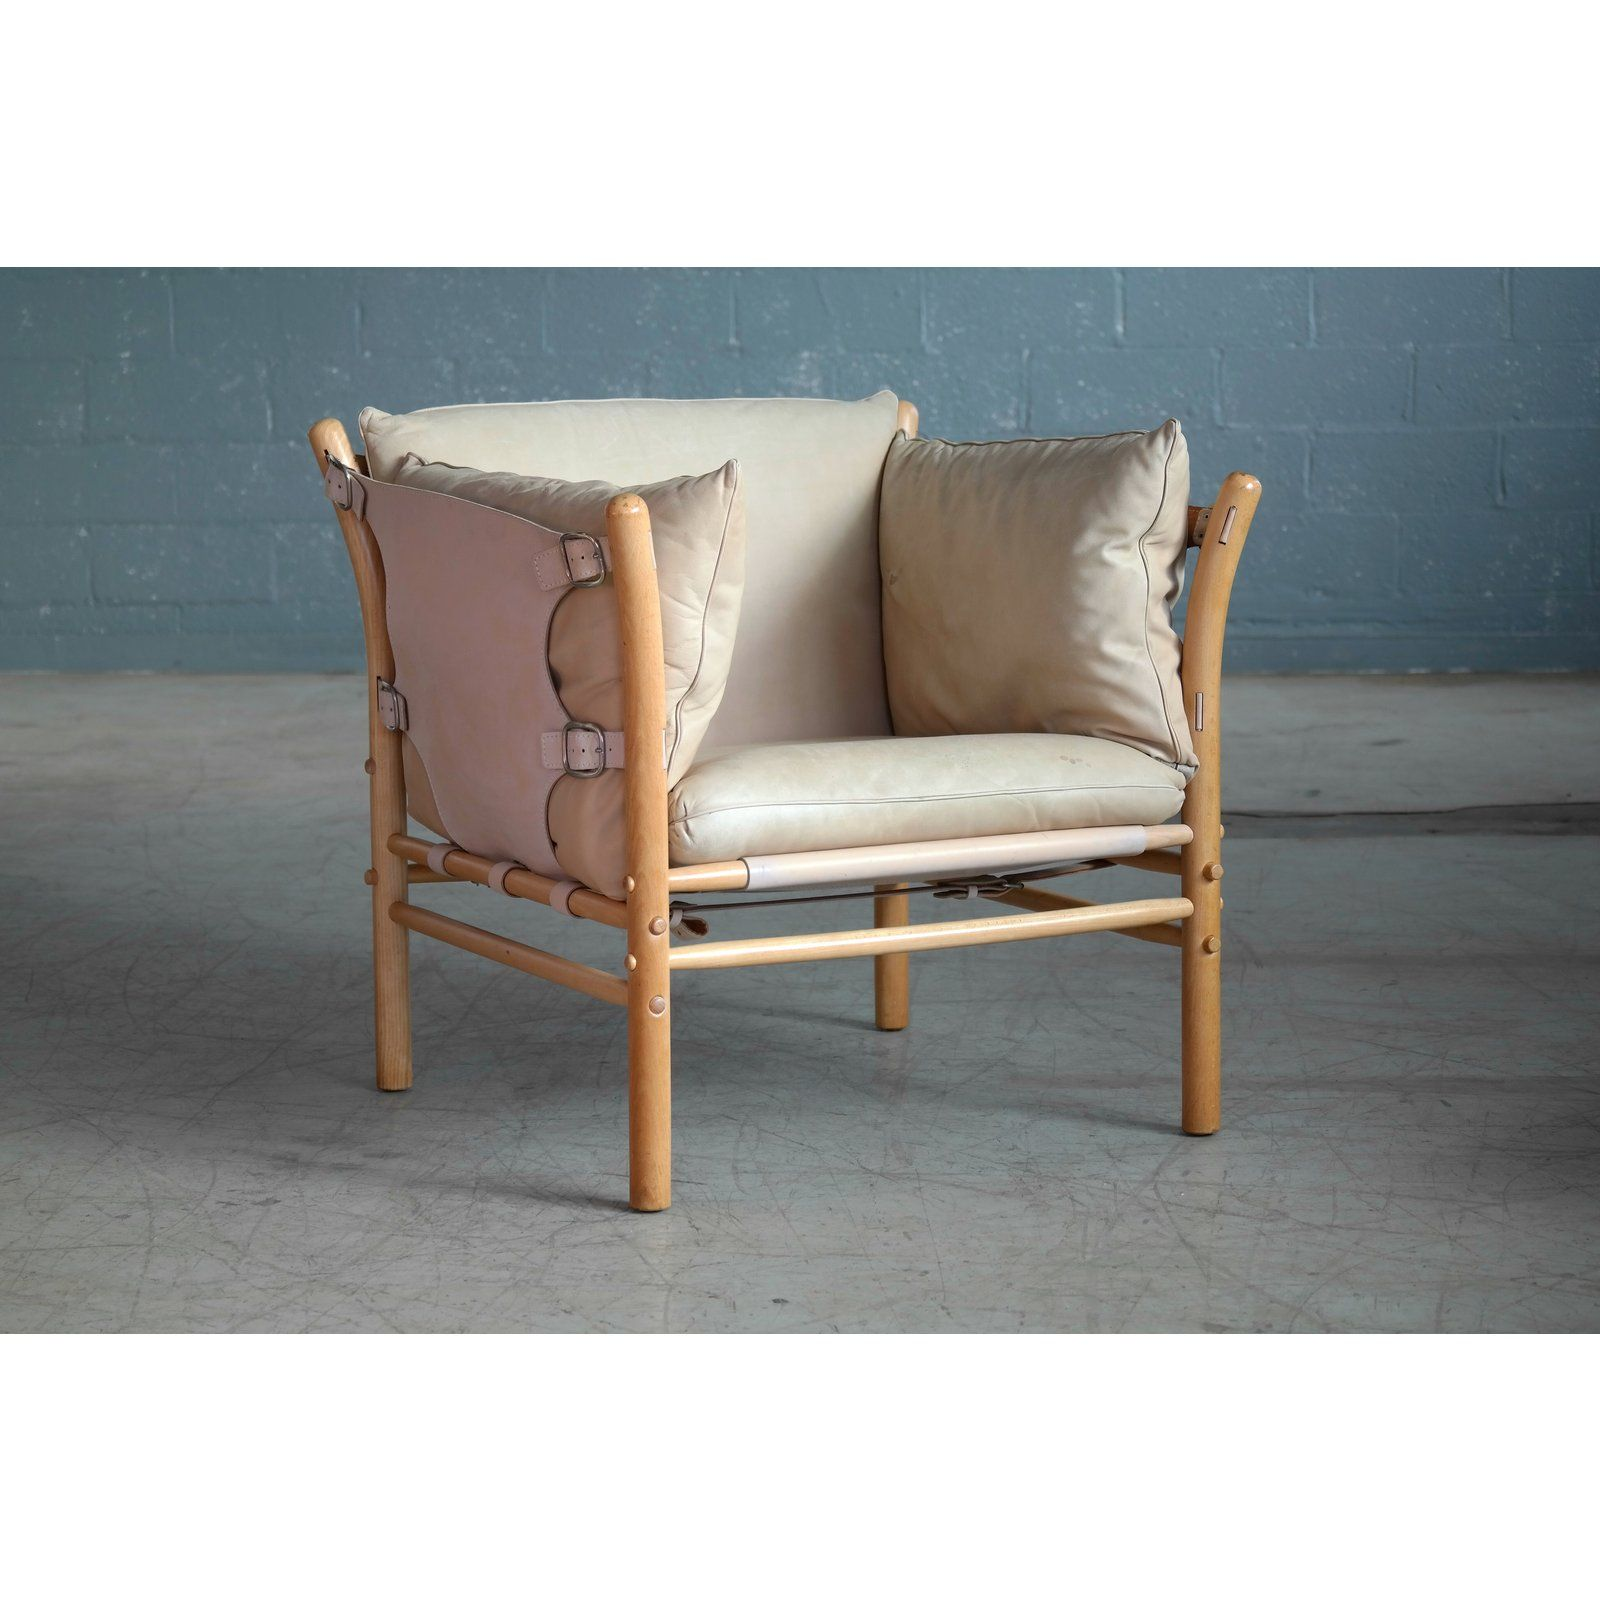 High End Arne Norell Safari 1960s Chair Model Ilona In Cream And Tan Leather Decaso 1960s Chairs Chair Furniture